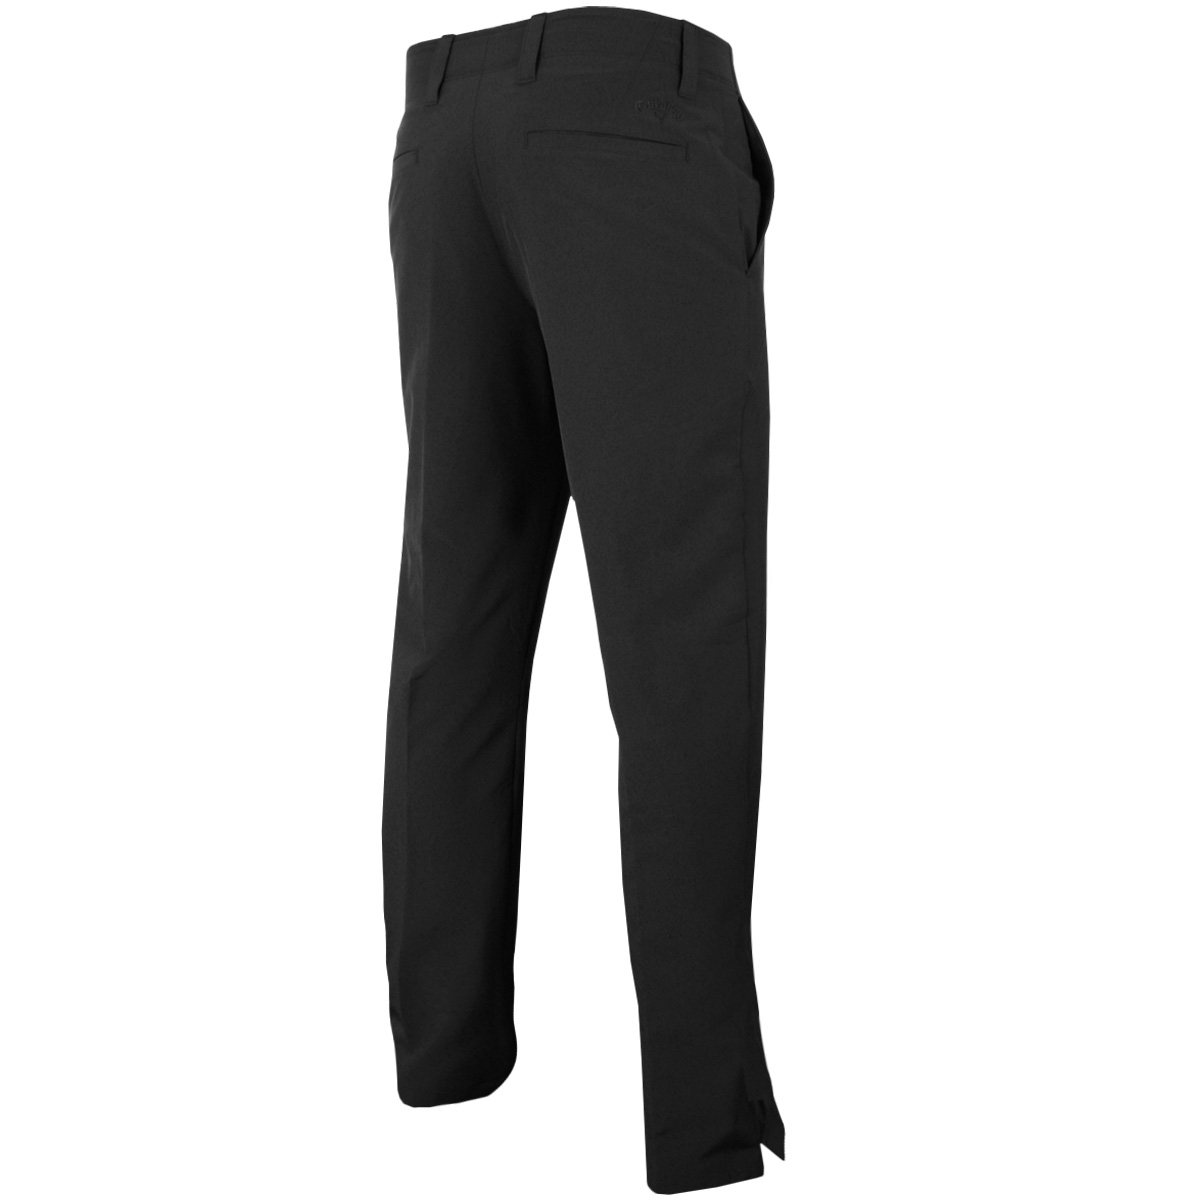 Callaway-Mens-2019-Chev-Tech-II-Lightweight-Stretch-Golf-Trousers-28-OFF-RRP thumbnail 6